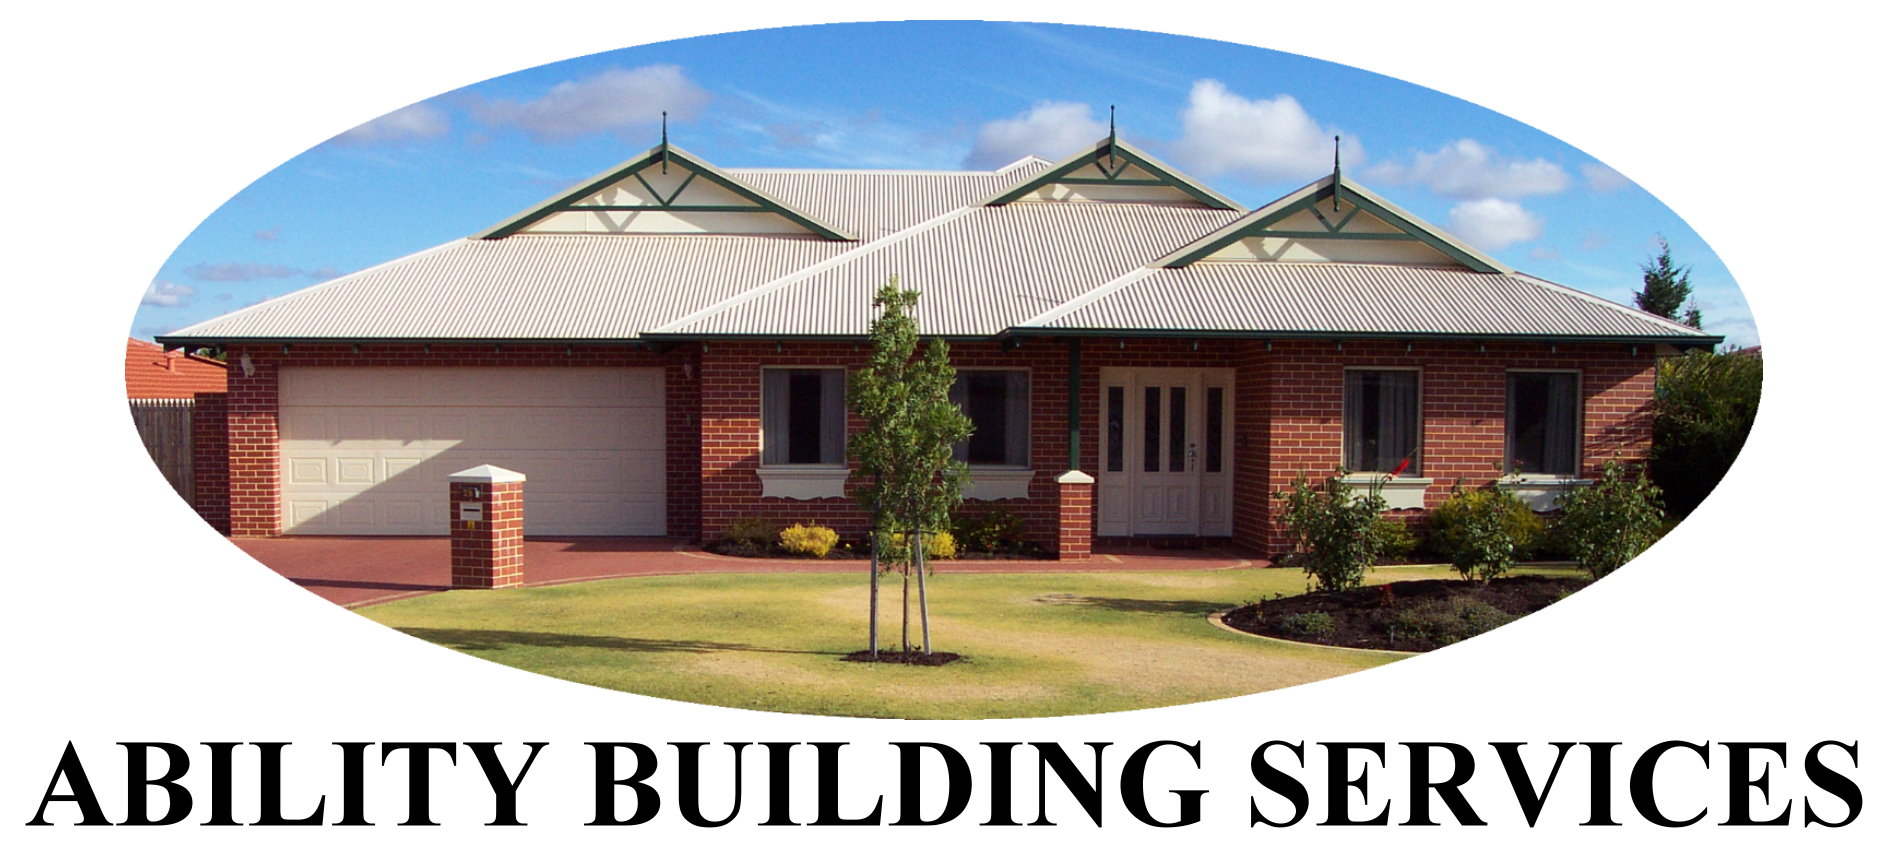 Ability Building Services